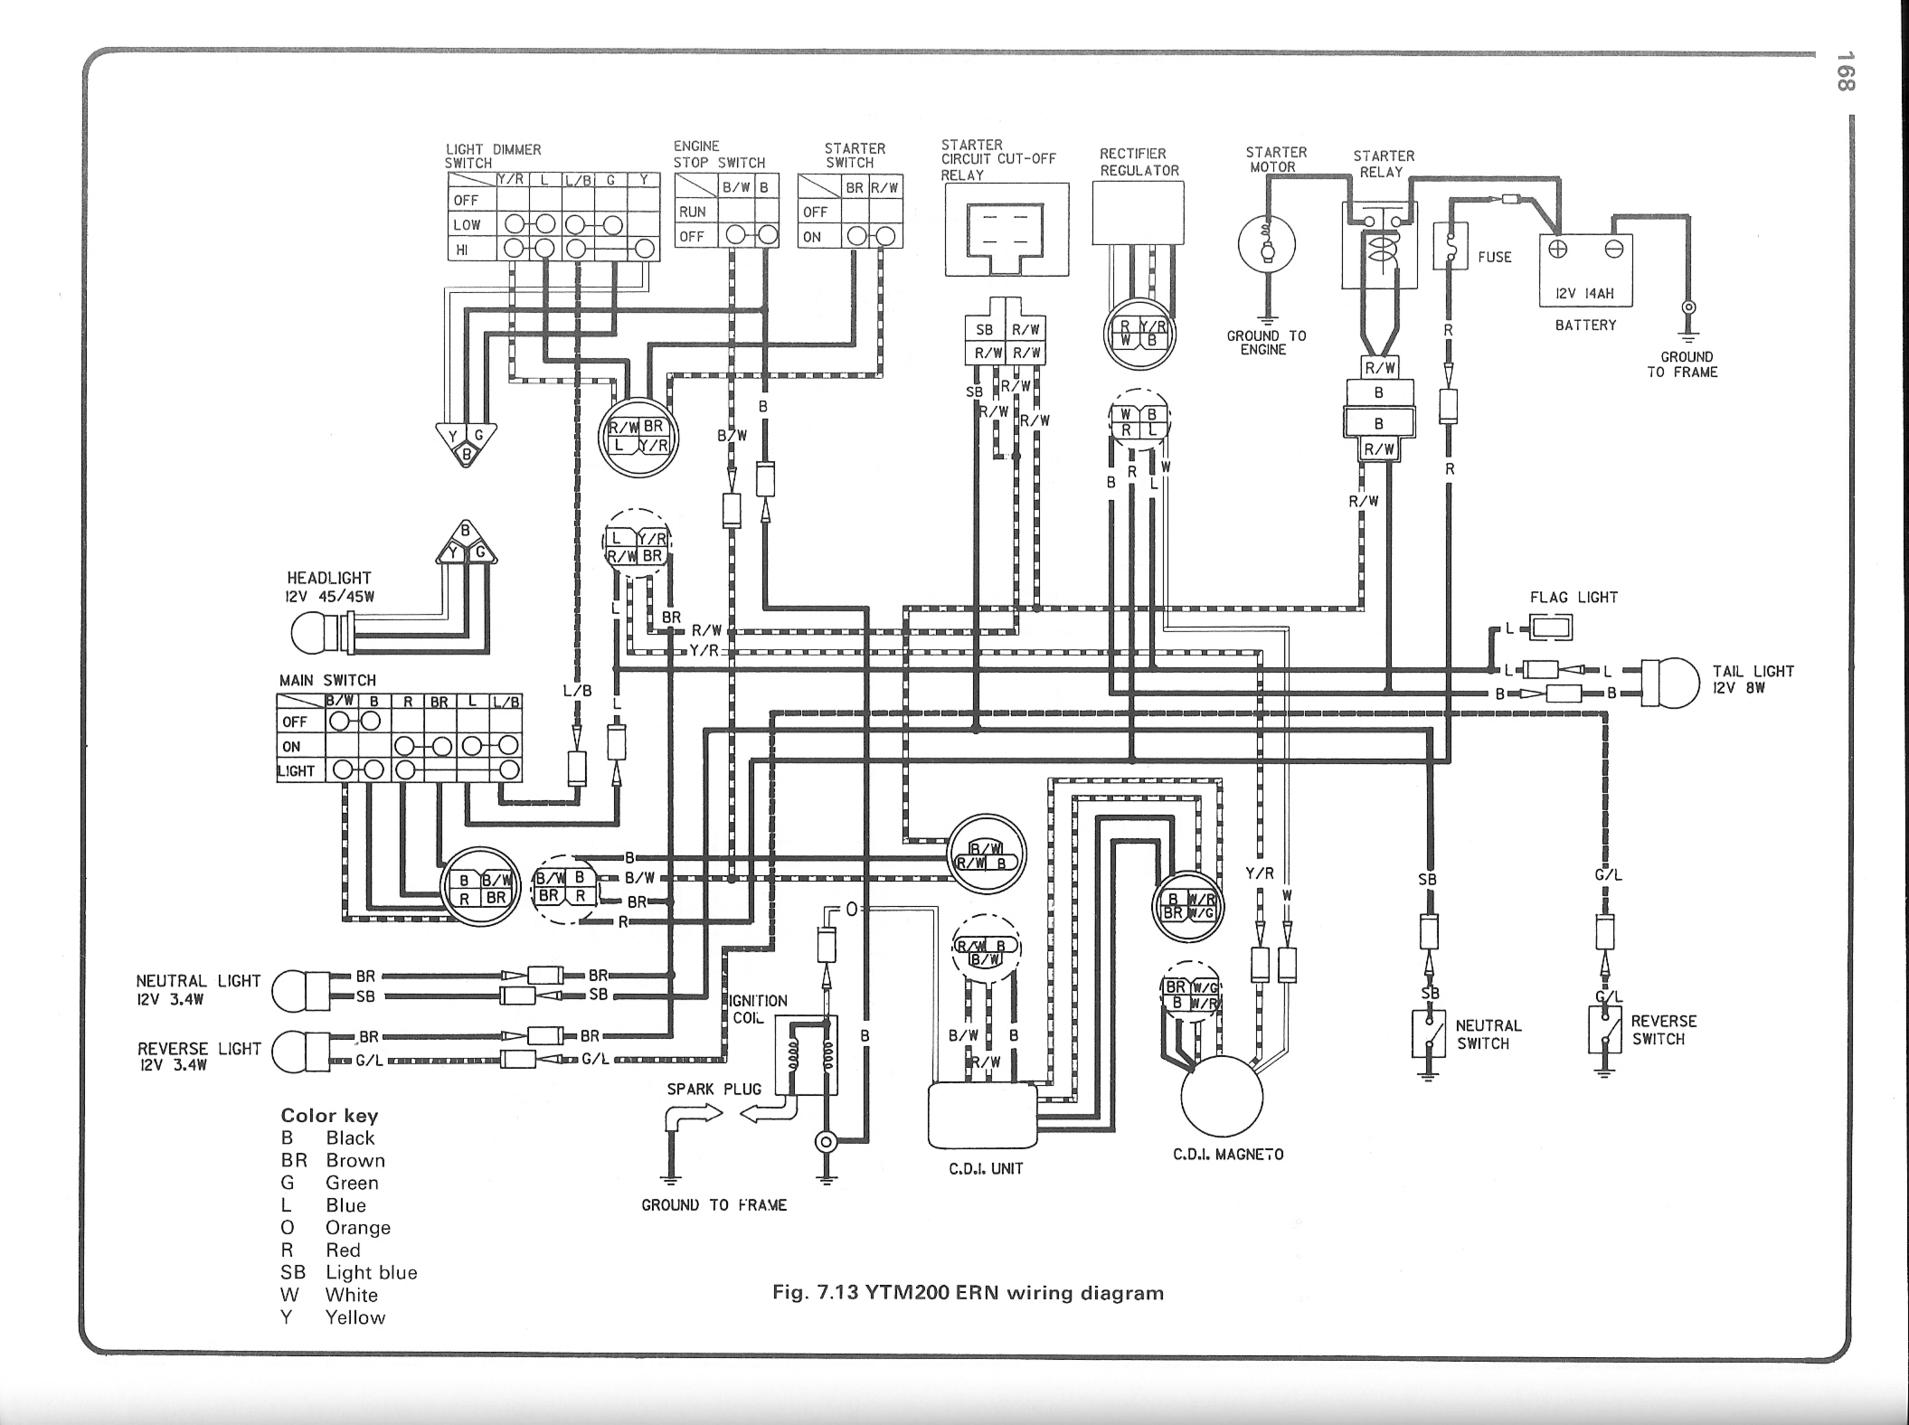 D5DE Kawasaki Lakota Wiring Diagram | Wiring Resources on honda xr200 wiring diagram, harley davidson wiring diagram, kawasaki lakota motor, kawasaki lakota valves, kawasaki lakota wheels, kawasaki lakota clutch, kawasaki lakota exhaust, kawasaki lakota headlight,